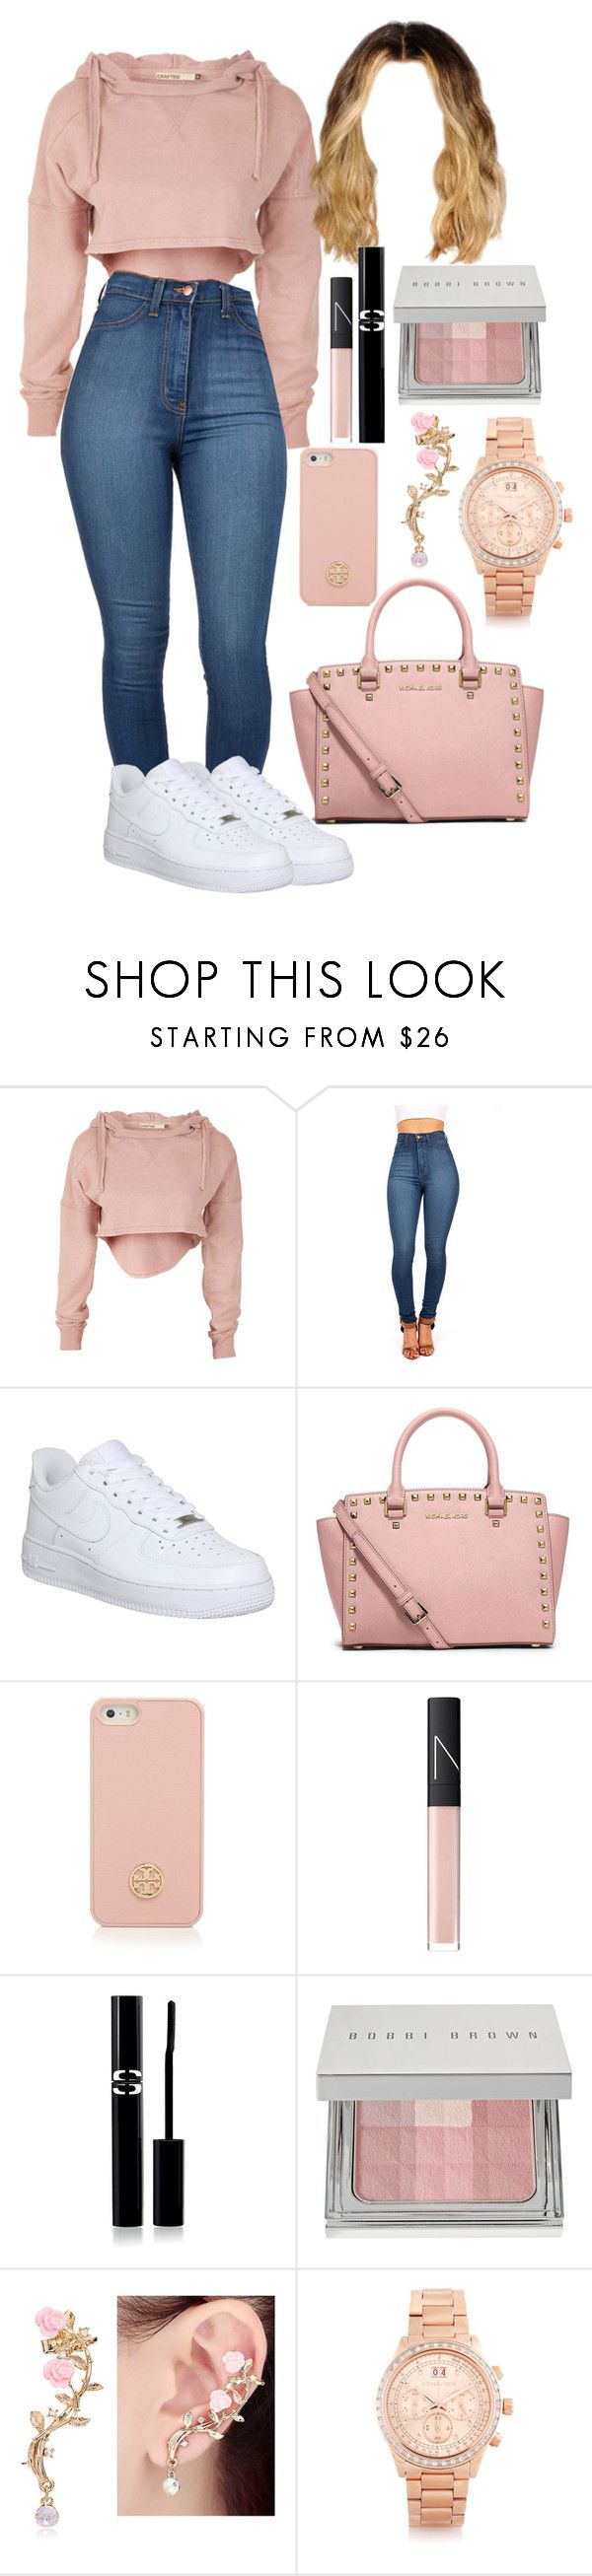 c246b8a54 Untitled #35 by yaritzaj ❤ liked on Polyvore featuring NIKE, MICHAEL  Michael Kors, Tory Burch, NARS Cosmetics, Sisley, Bobbi Brown Cosmetics and  Michael ...